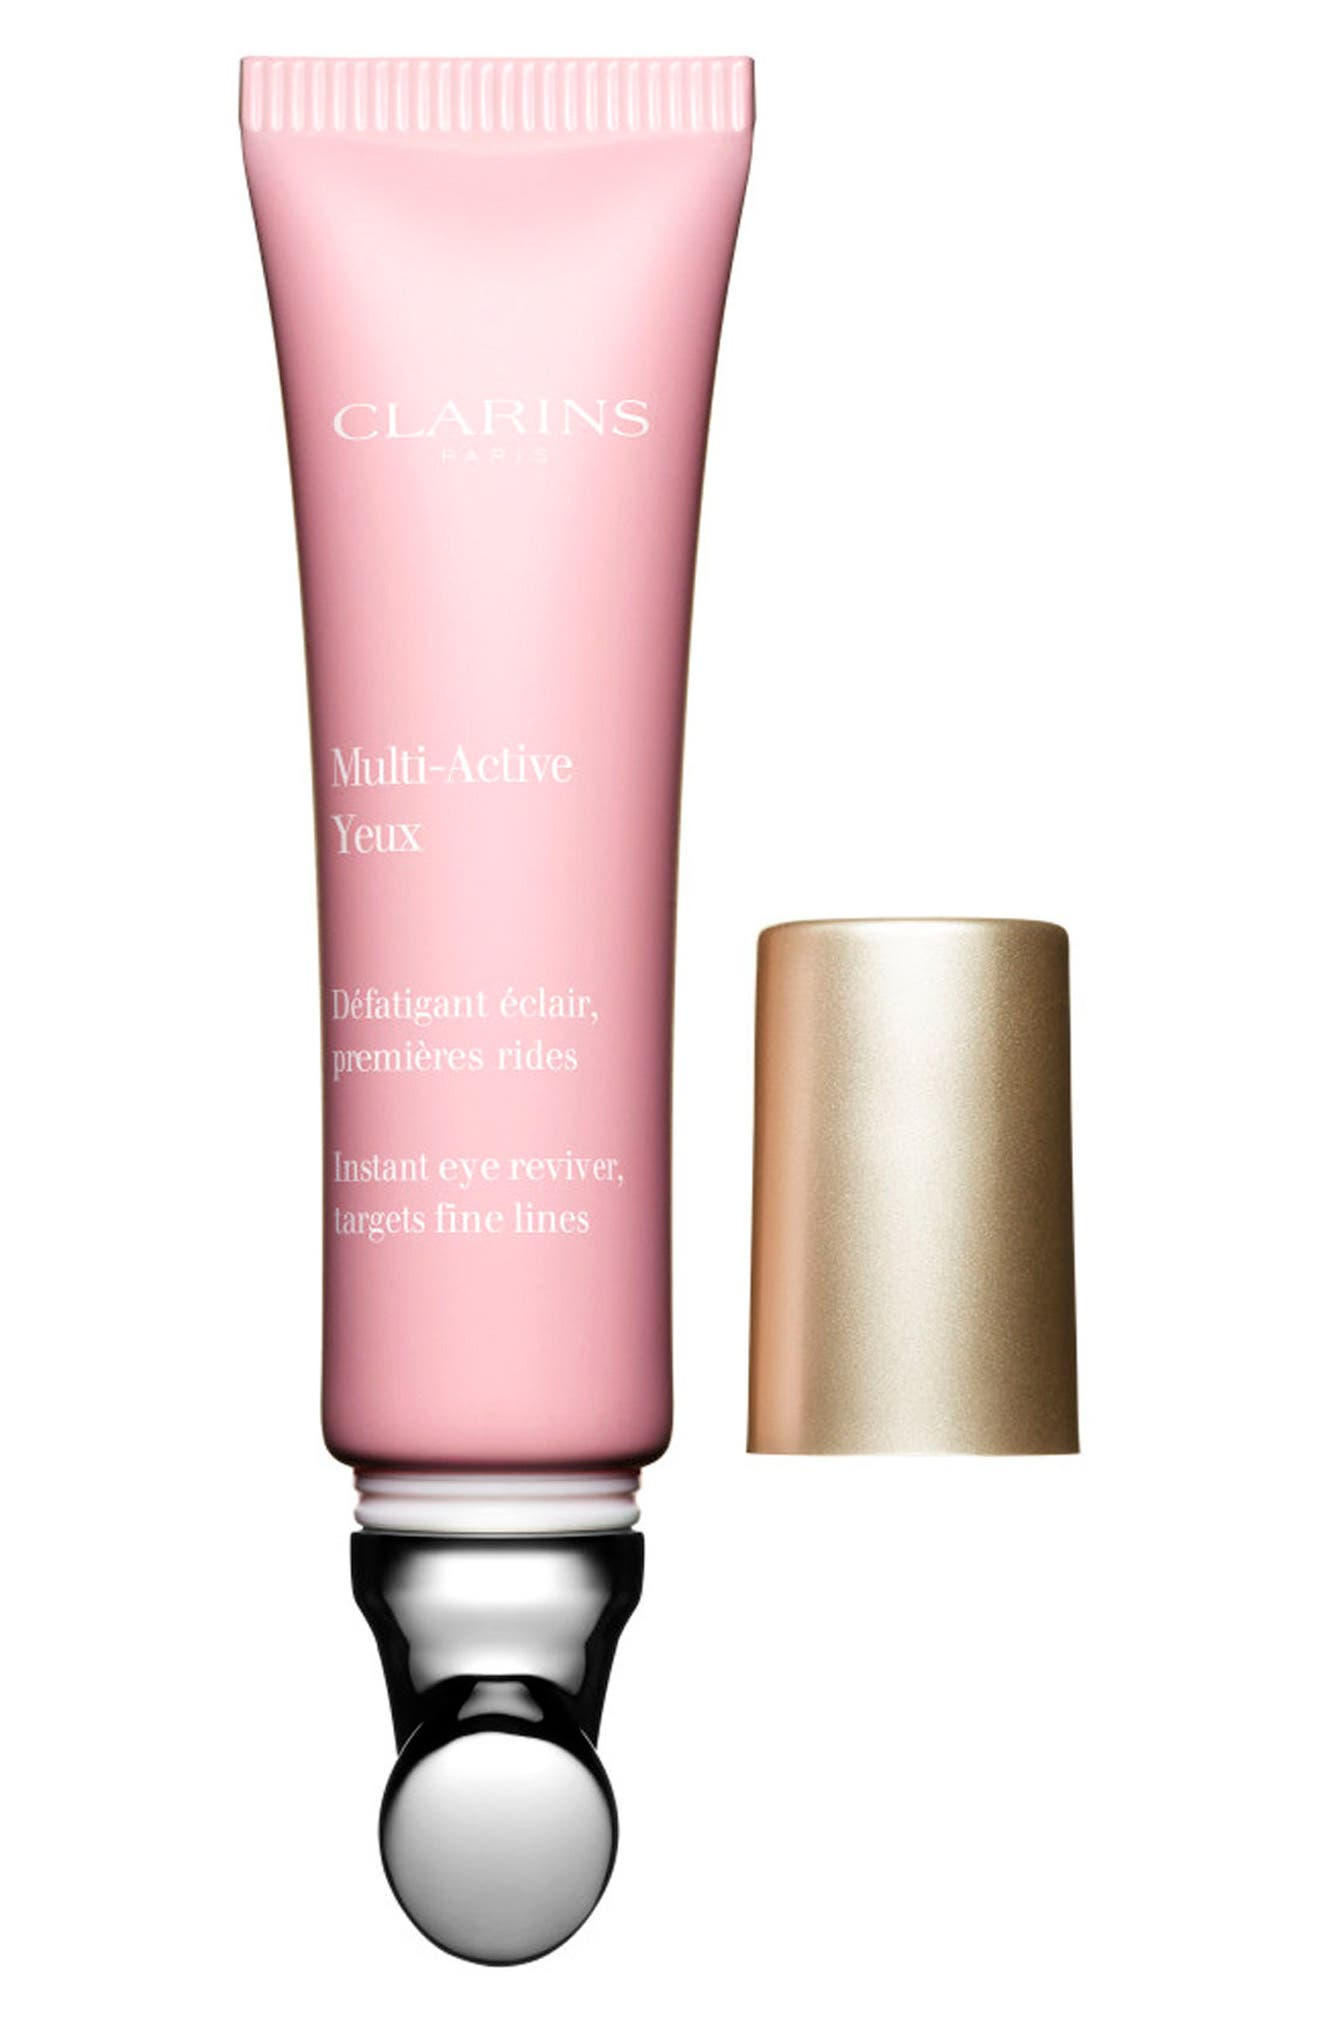 CLARINS, Multi-Active Eye, Alternate thumbnail 2, color, NO COLOR